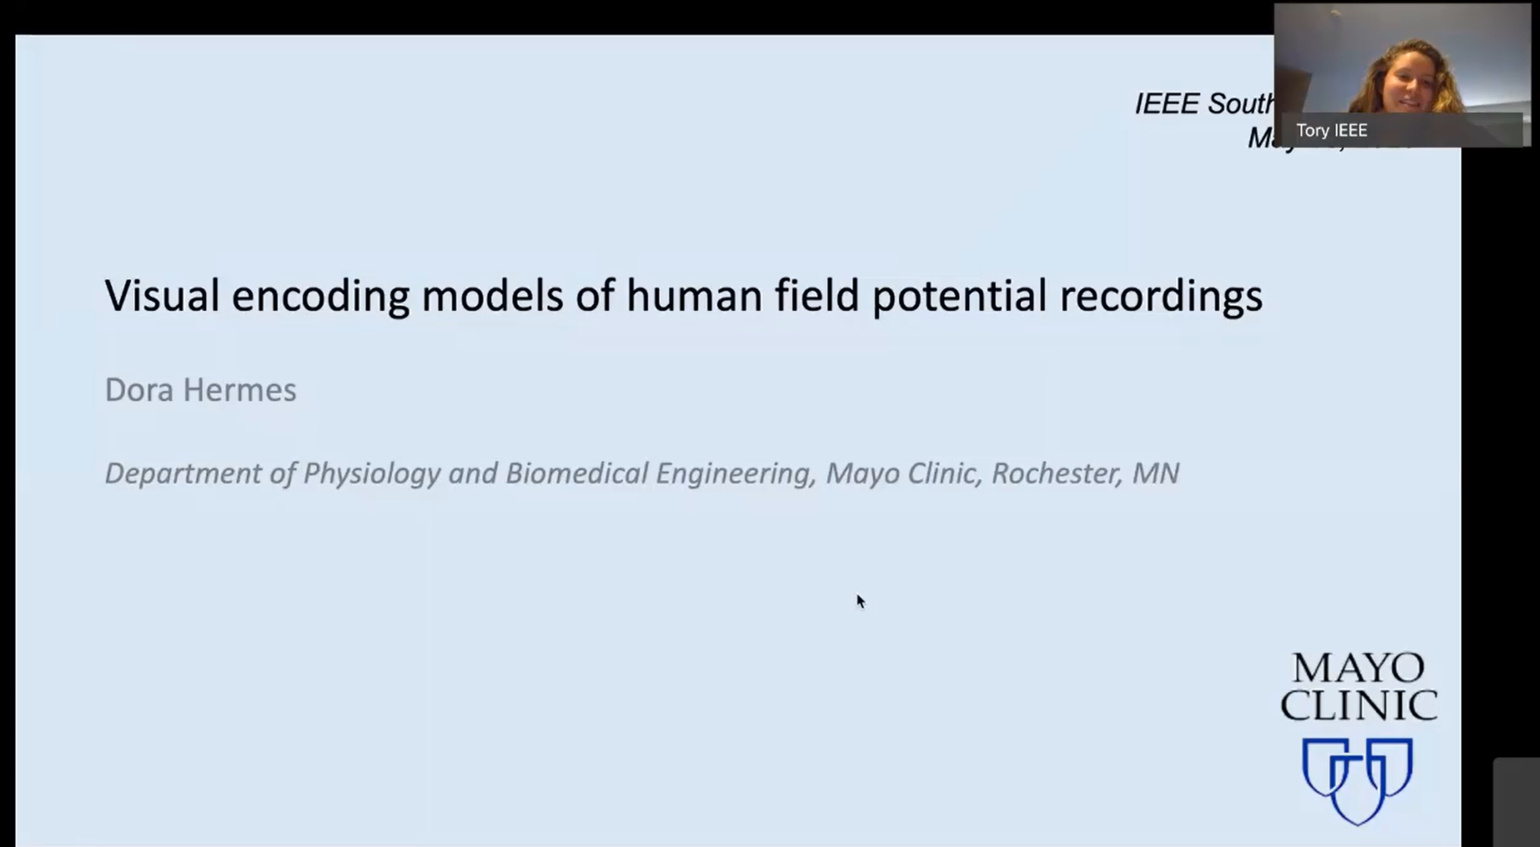 Visual Encoding Models of Human Field Potential Recordings